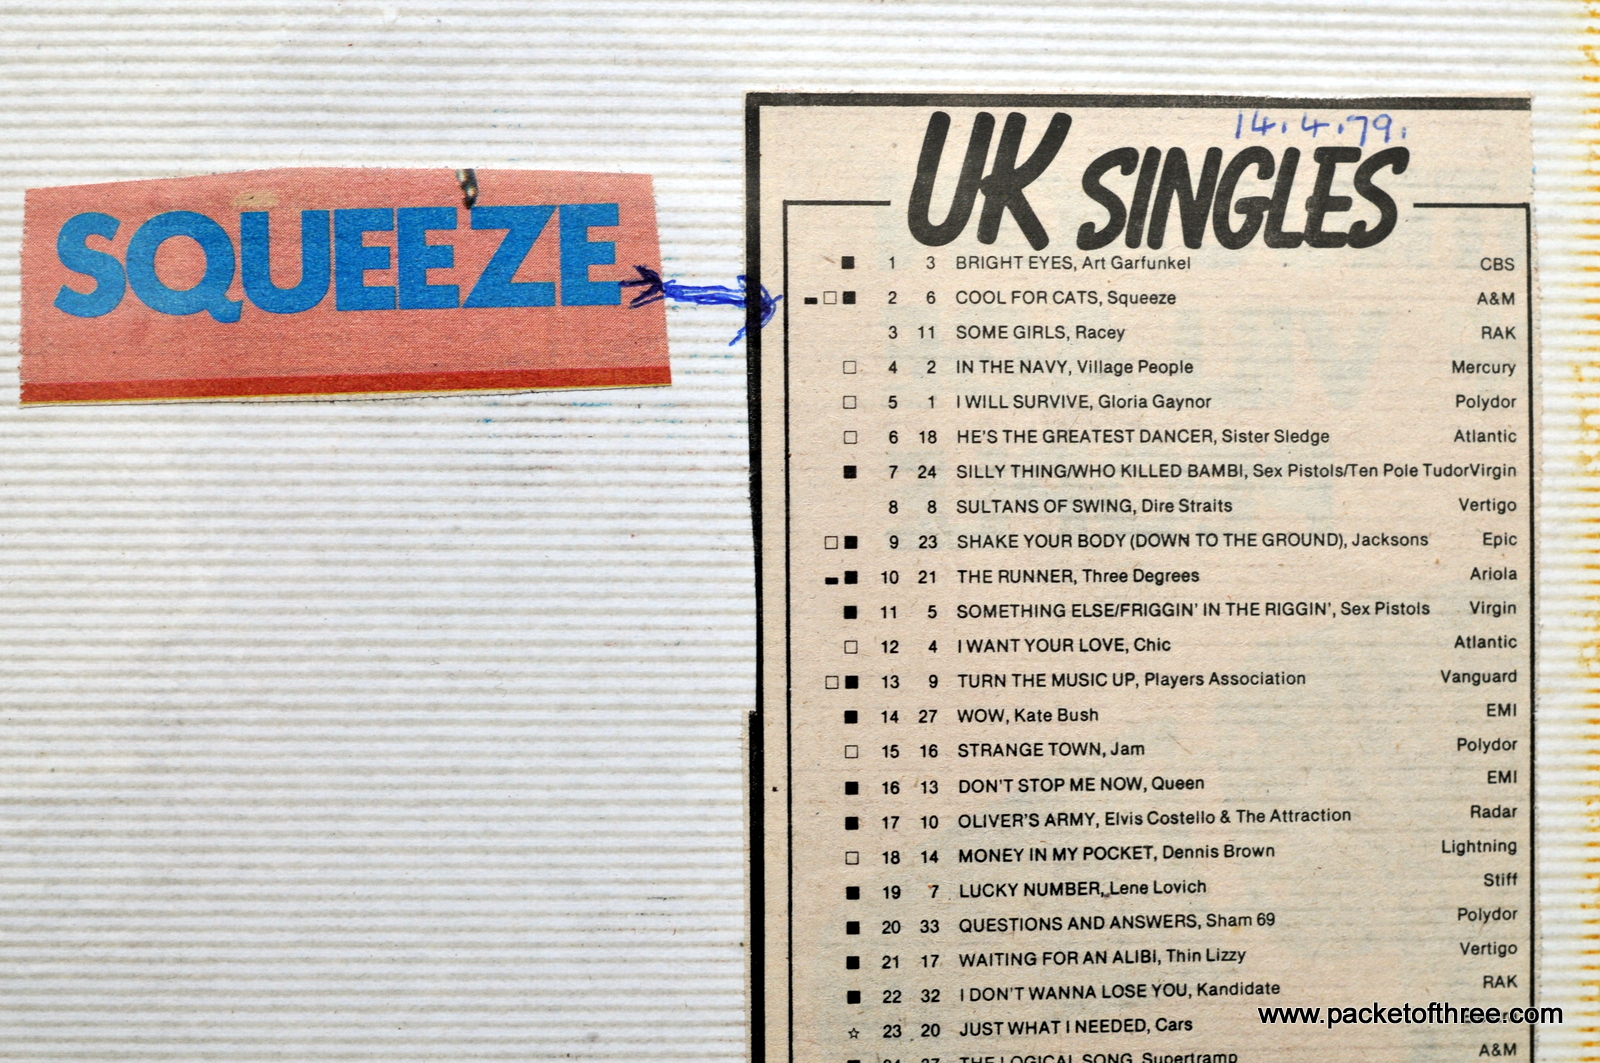 Cool For Cats reaches #2 in the UK singles chart